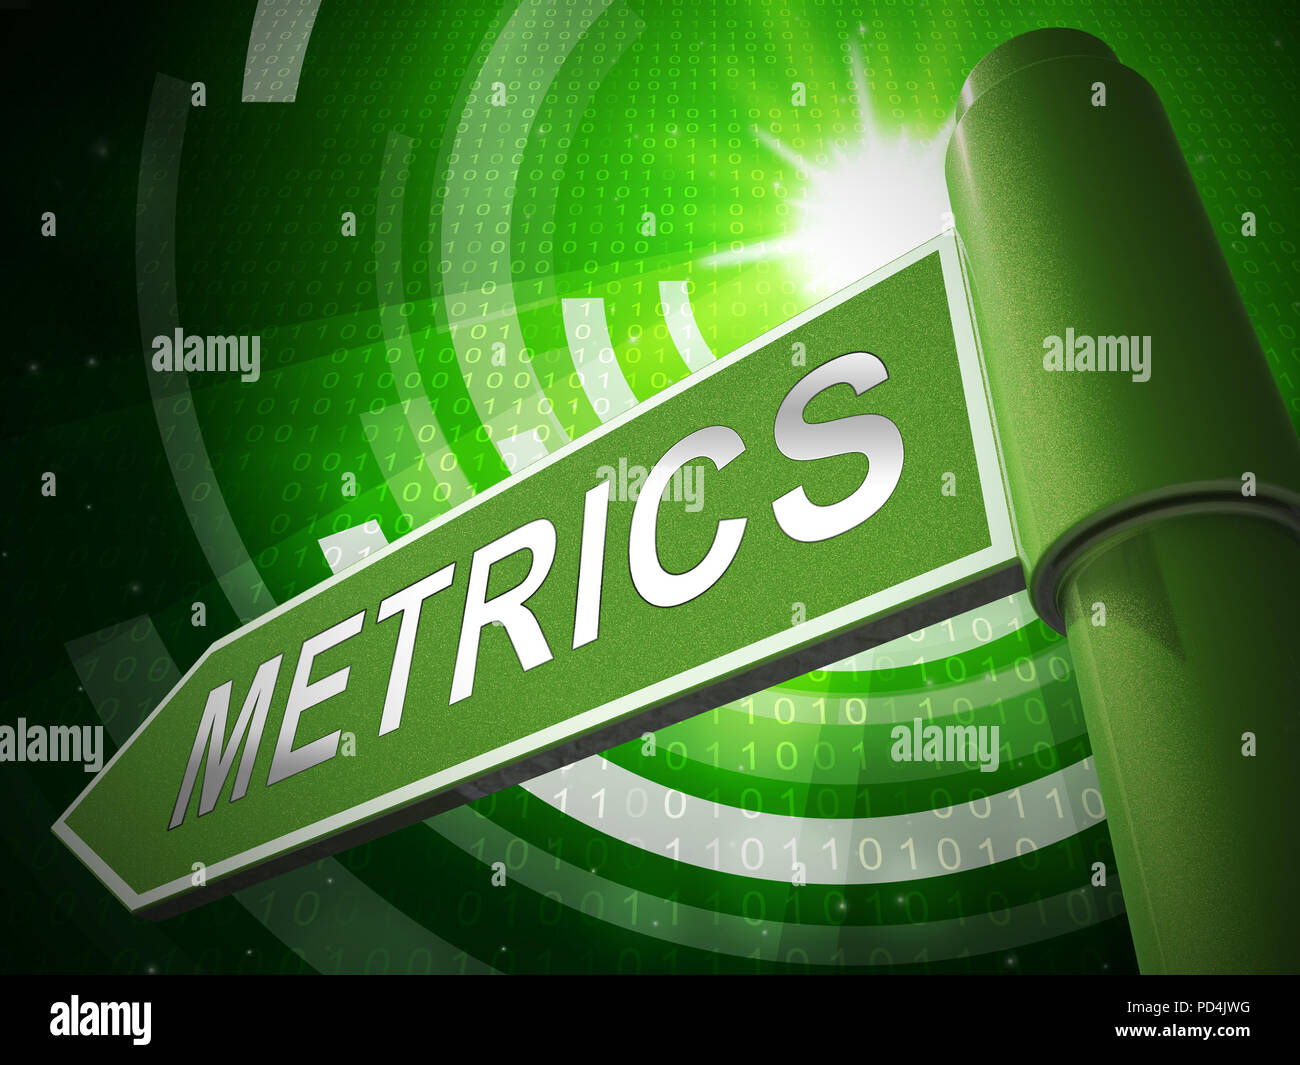 Website Metrics Business Site Analytics 3d Illustration Shows Analytic Forecasts Or Trends For Data Evaluation - Stock Image